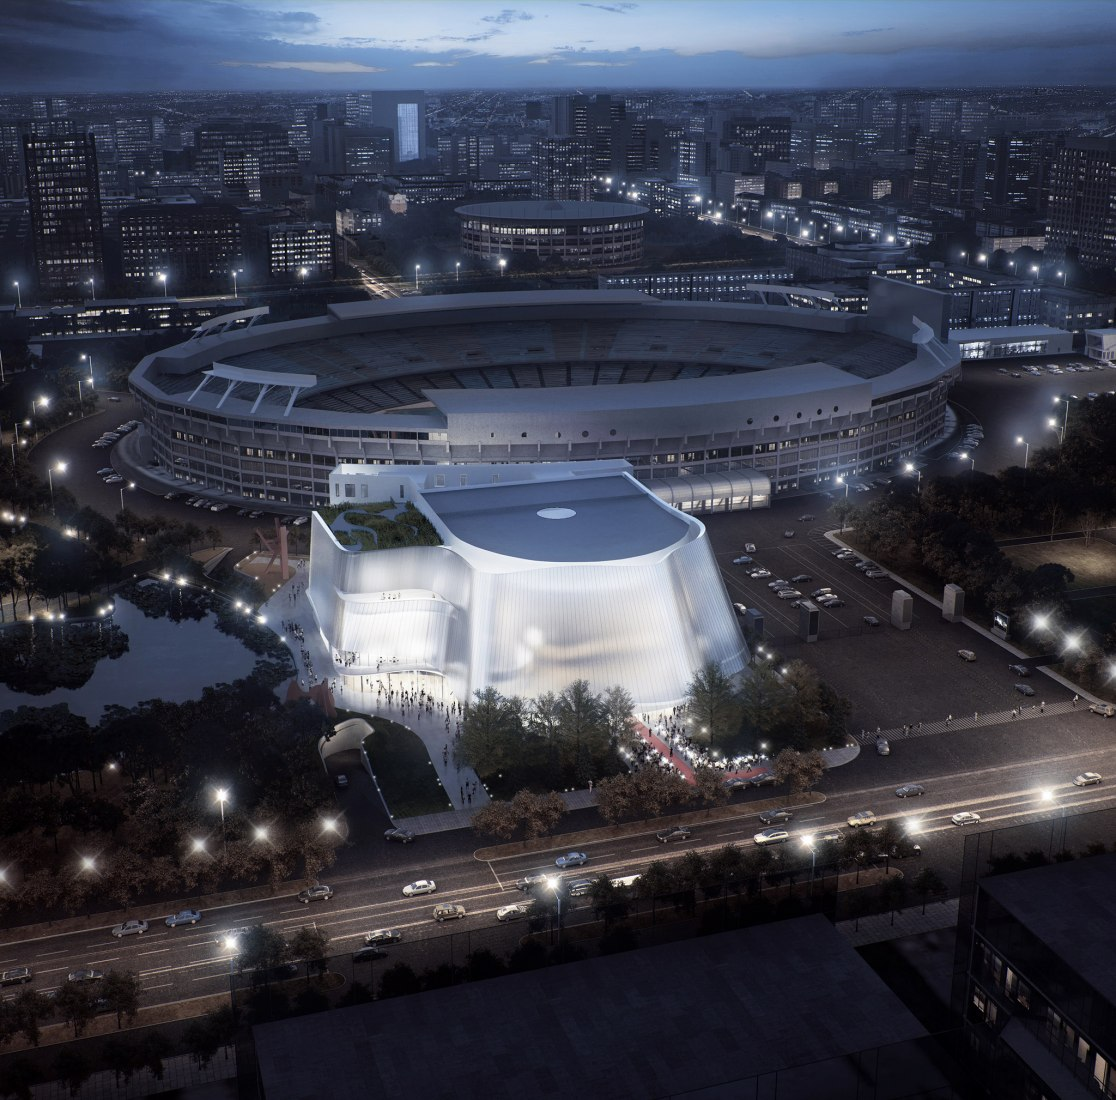 Design for the China Philharmonic's New Concert Hall in Beijing by MAD Architects.